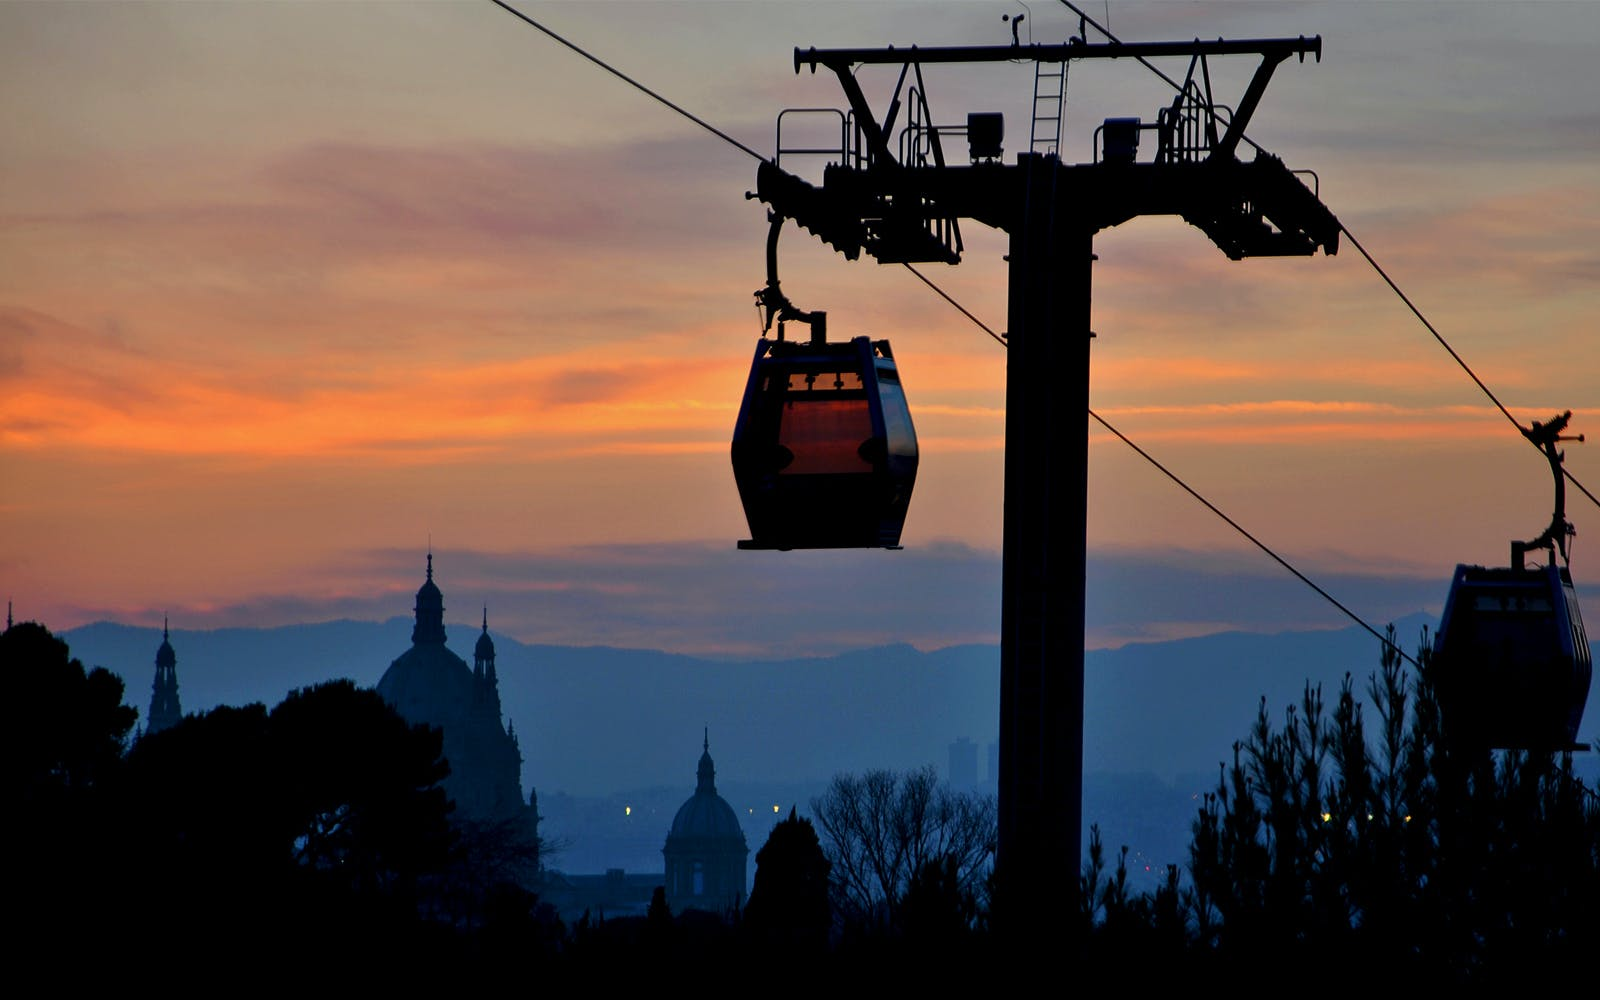 Teleferic De Montjuic/ Montjuic Cable Car